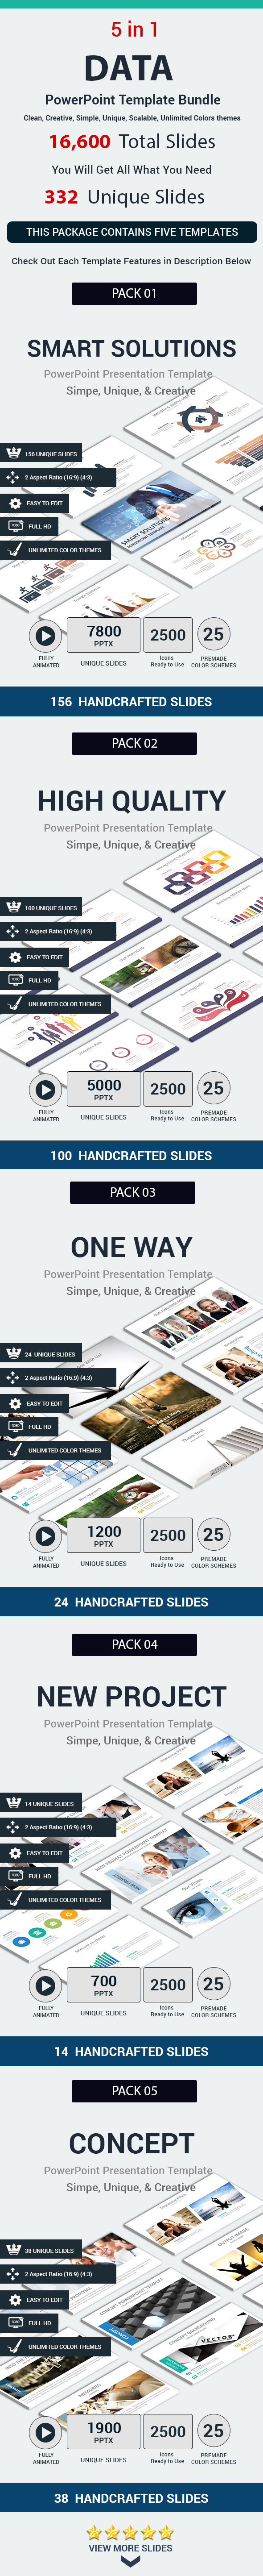 Data 5 in 1 PowerPoint Template Bundle - Business PowerPoint Templates